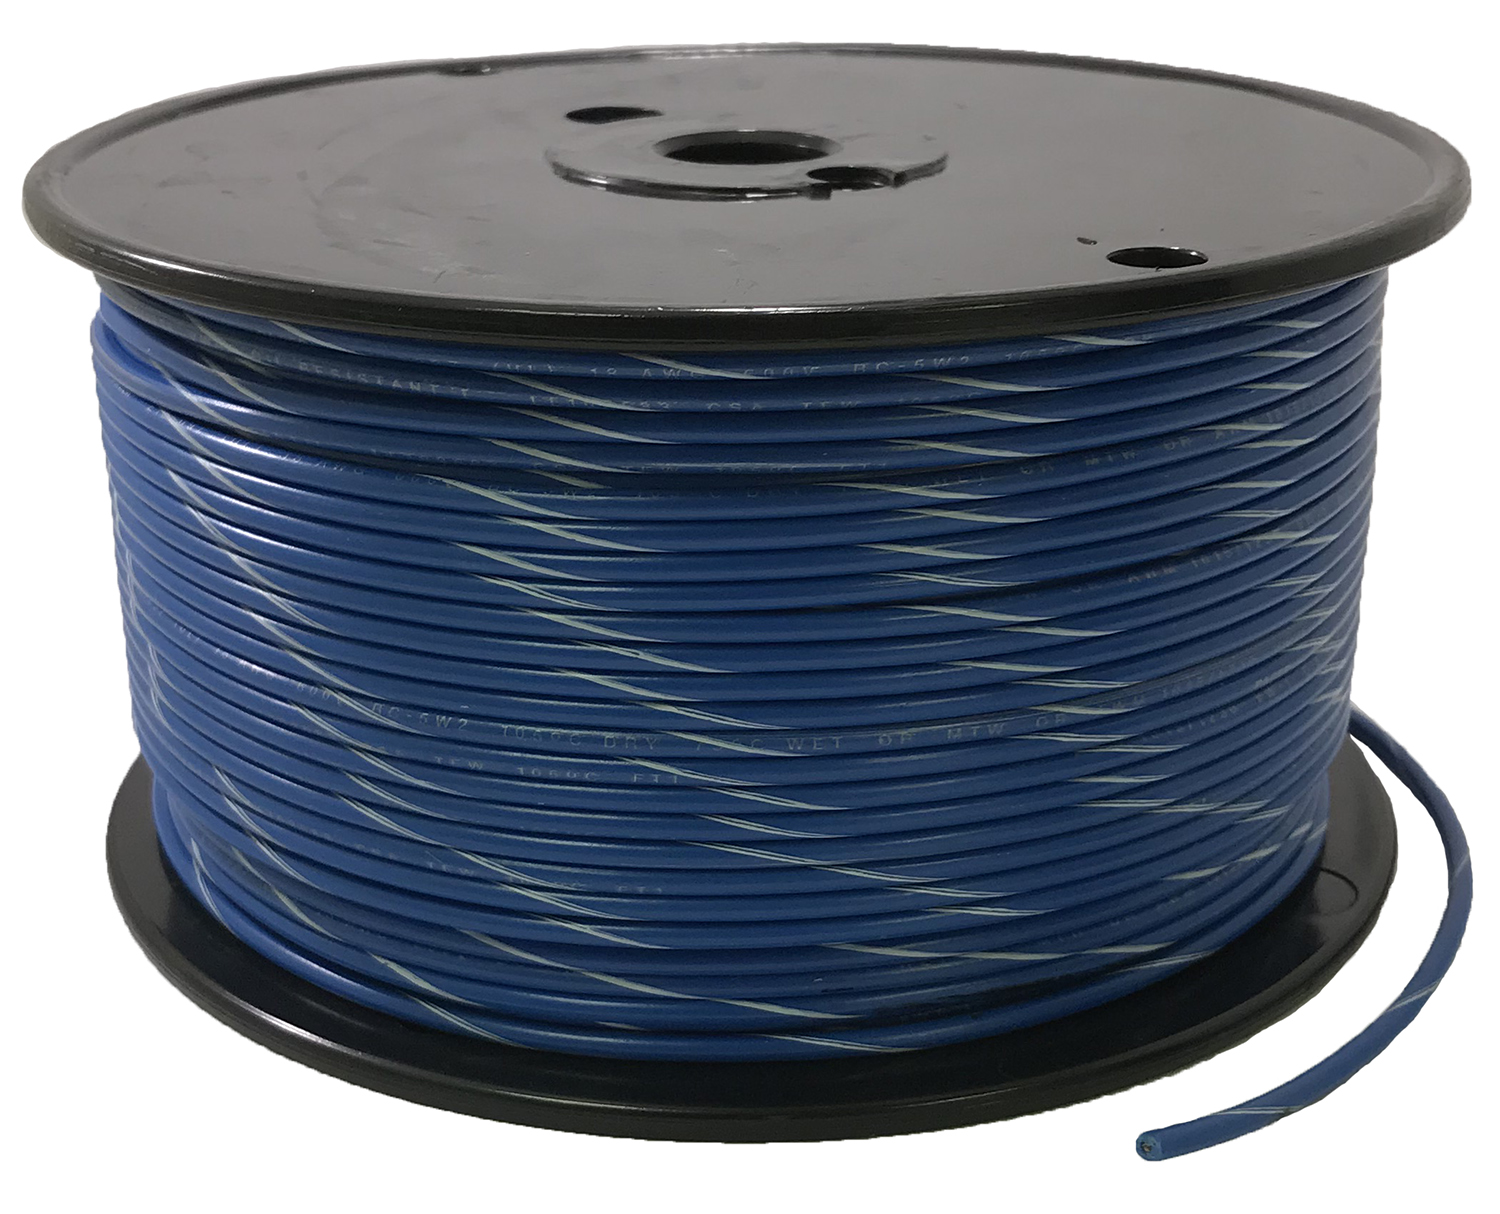 Where To Buy Wire Marine Striped Wire Primary Tracer Wire Usa Made 100 Tinned